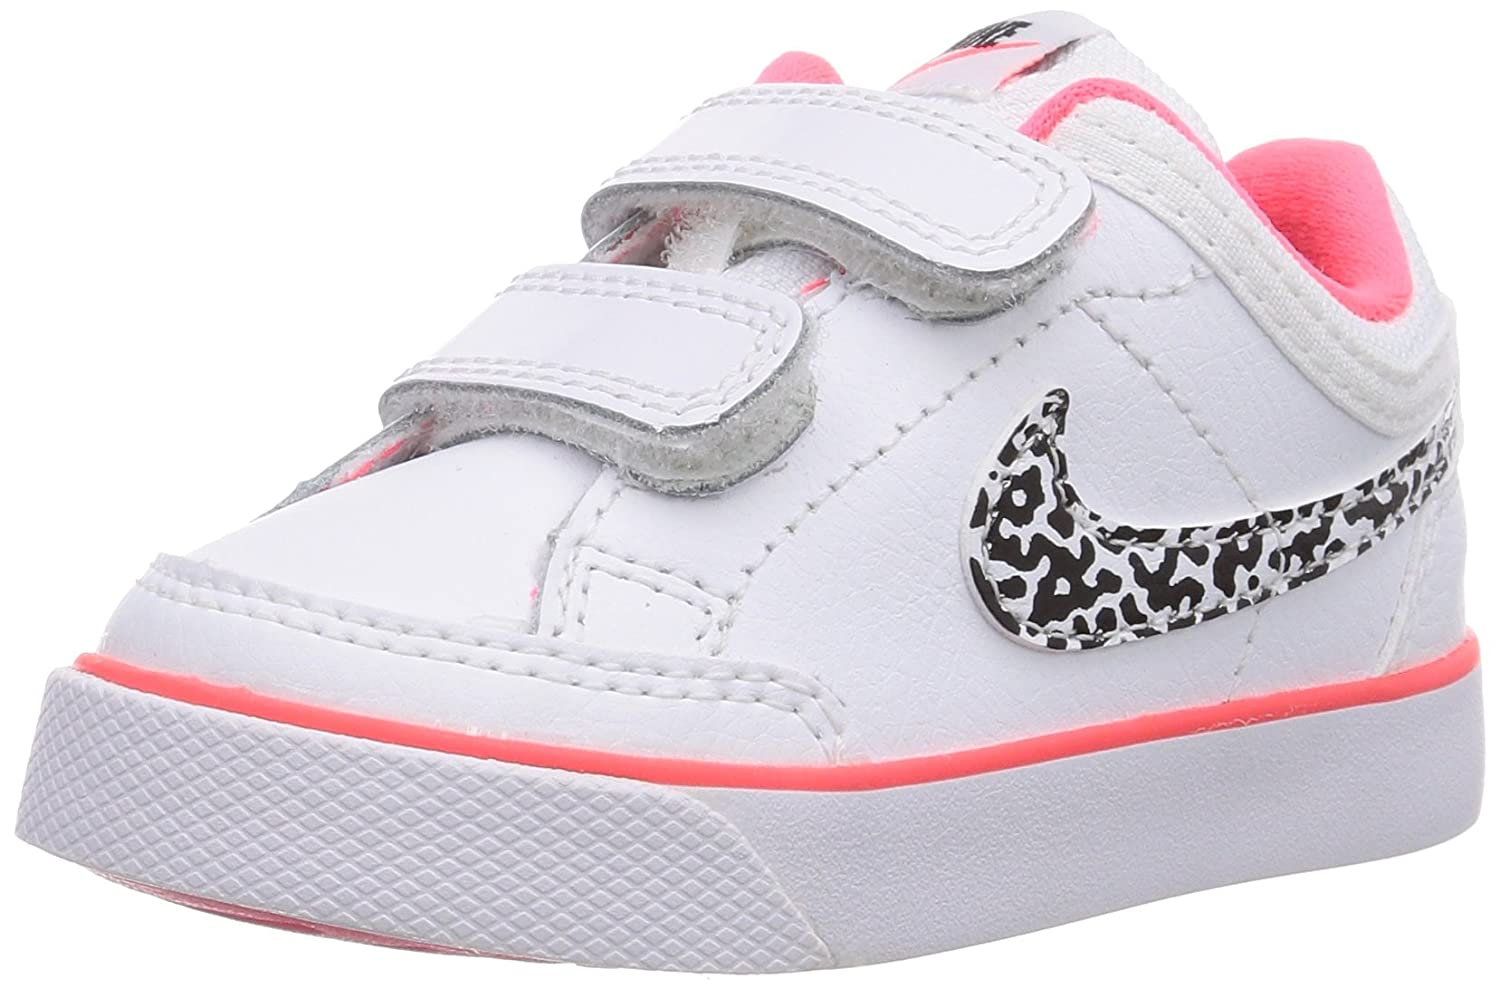 Nike Capri 3 Leather, Baby-Girls First Walking Shoes, White  (White/White/Black/Hyper Punch 103), 1.5 UK: Amazon.co.uk: Shoes & Bags